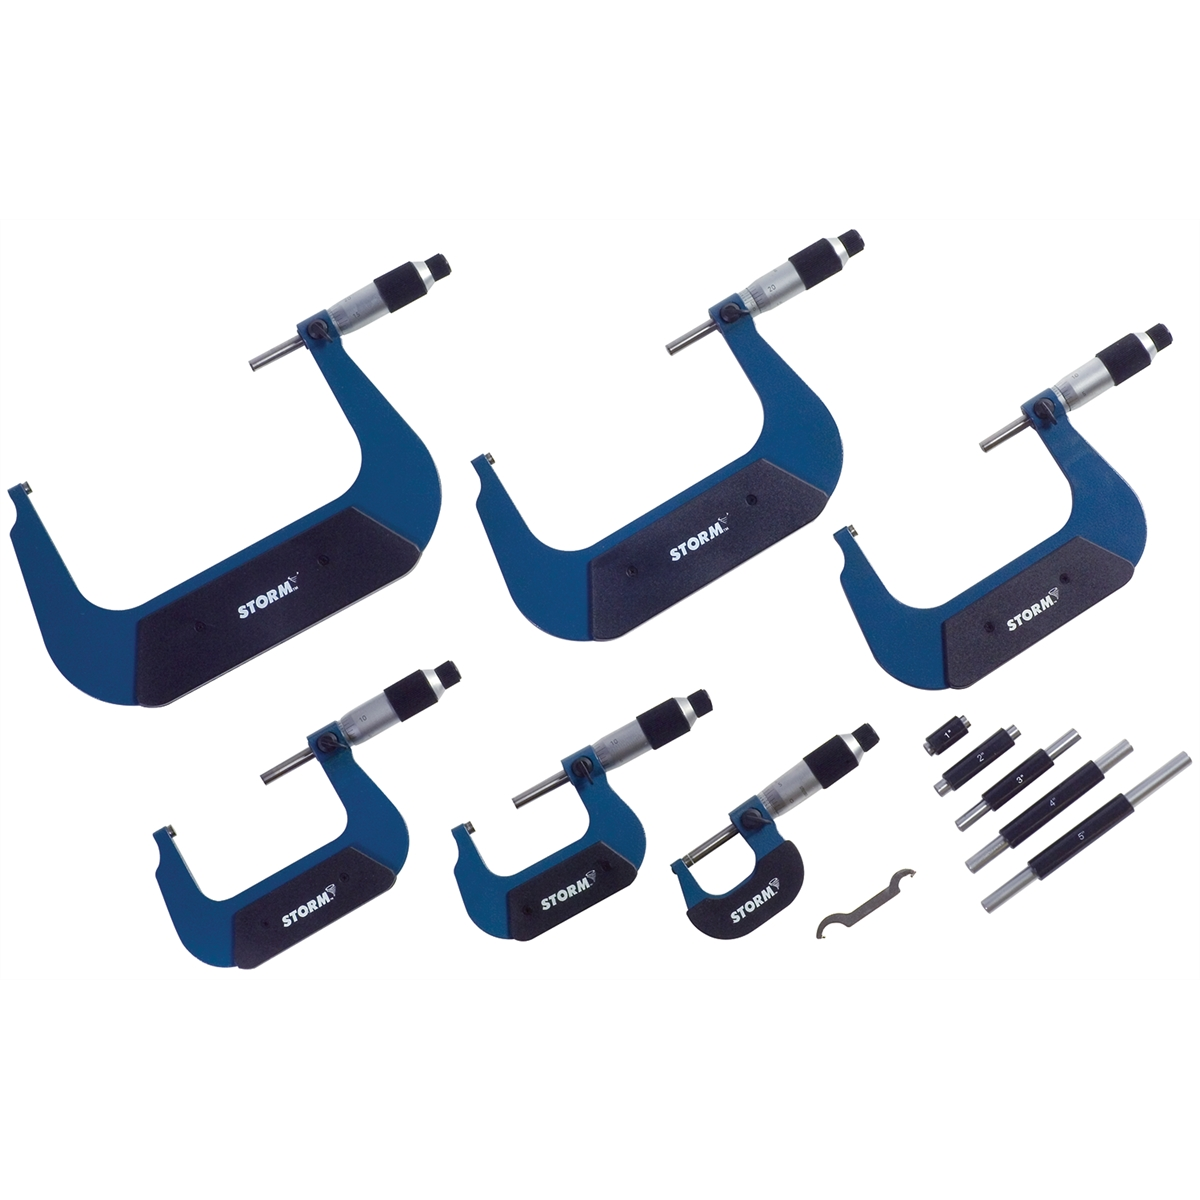 6Pc. Import Outside Micrometer Set